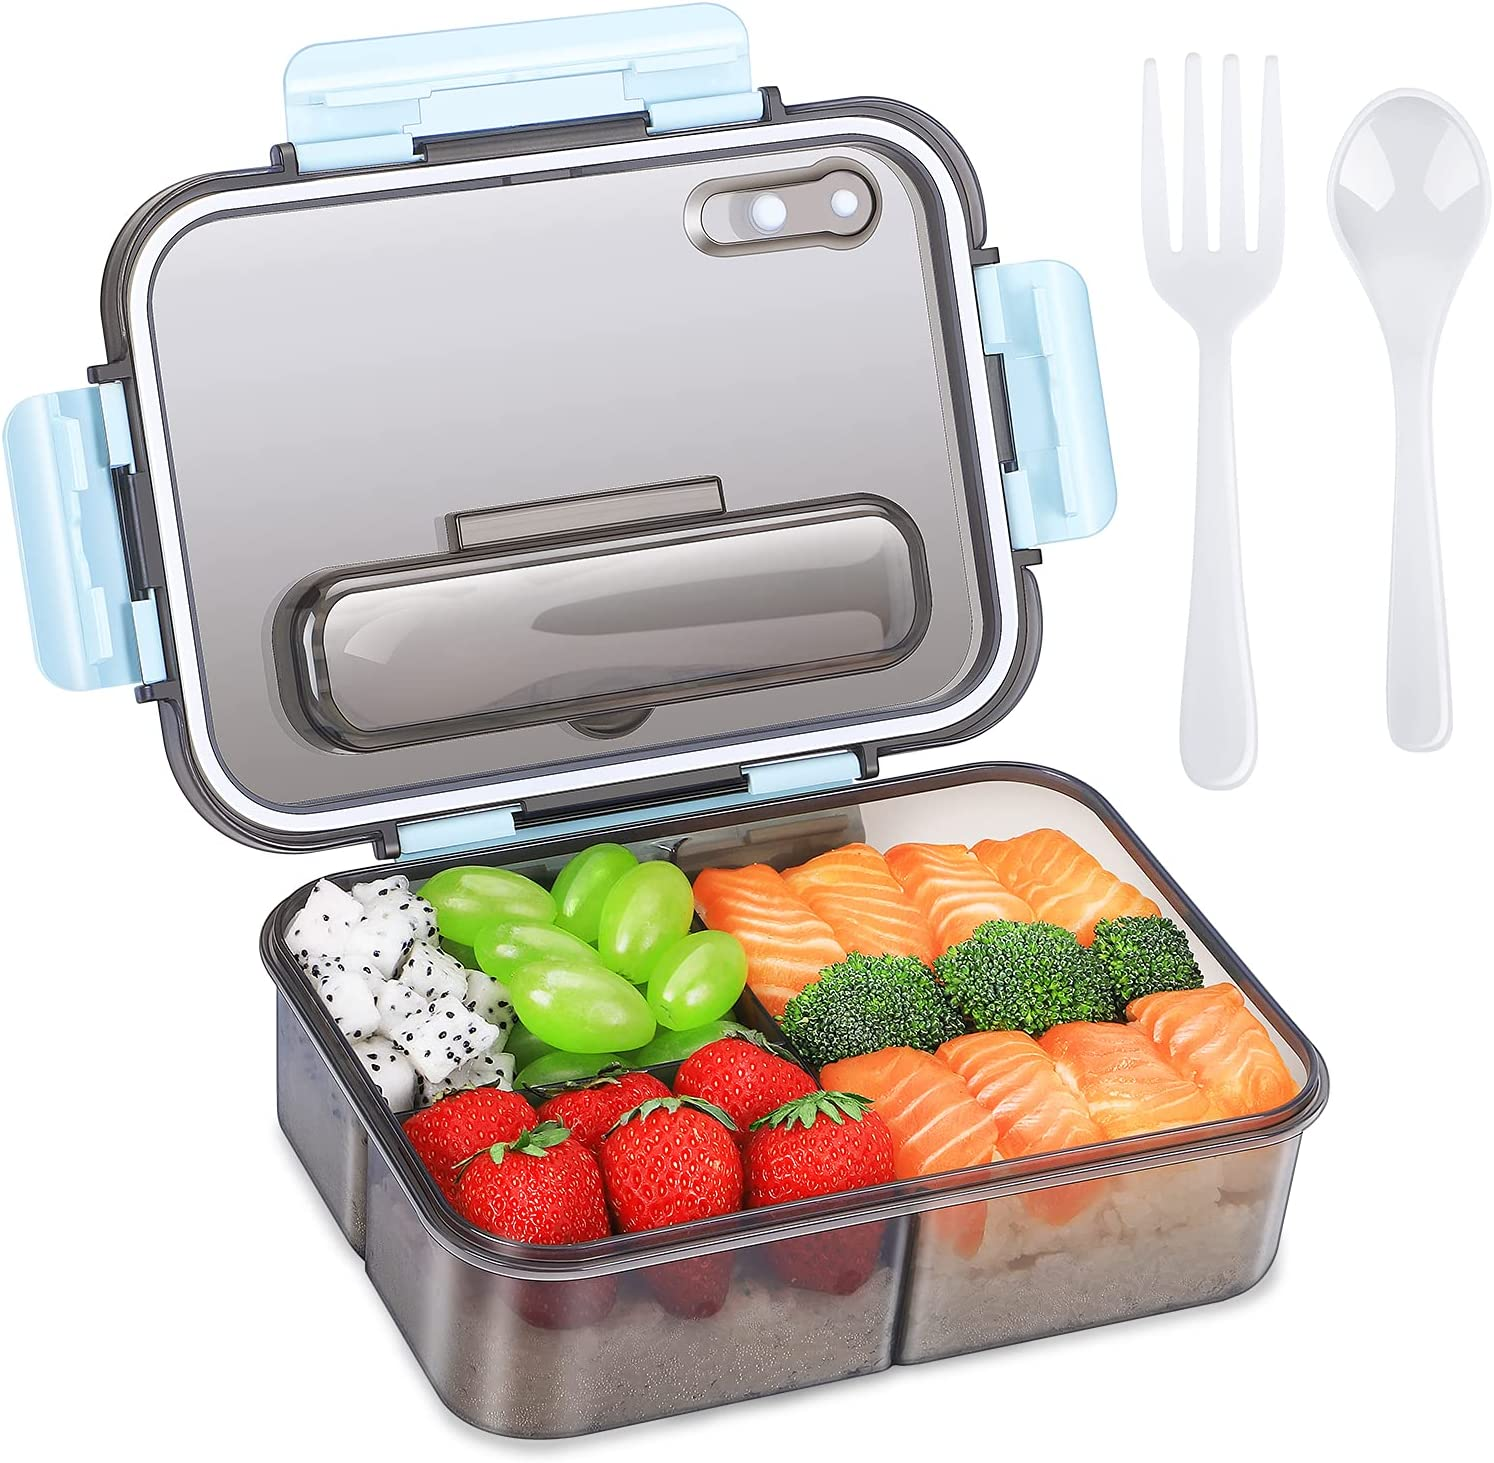 Bento Box Adults Lunch Box and Children ,Food Storage Box and Takeaway Plastic Lunch Box,Versatile 3 Compartment Bento-Style- 1500ML -Food Container- with Tableware - Durable and Leak-Proof(Blue)